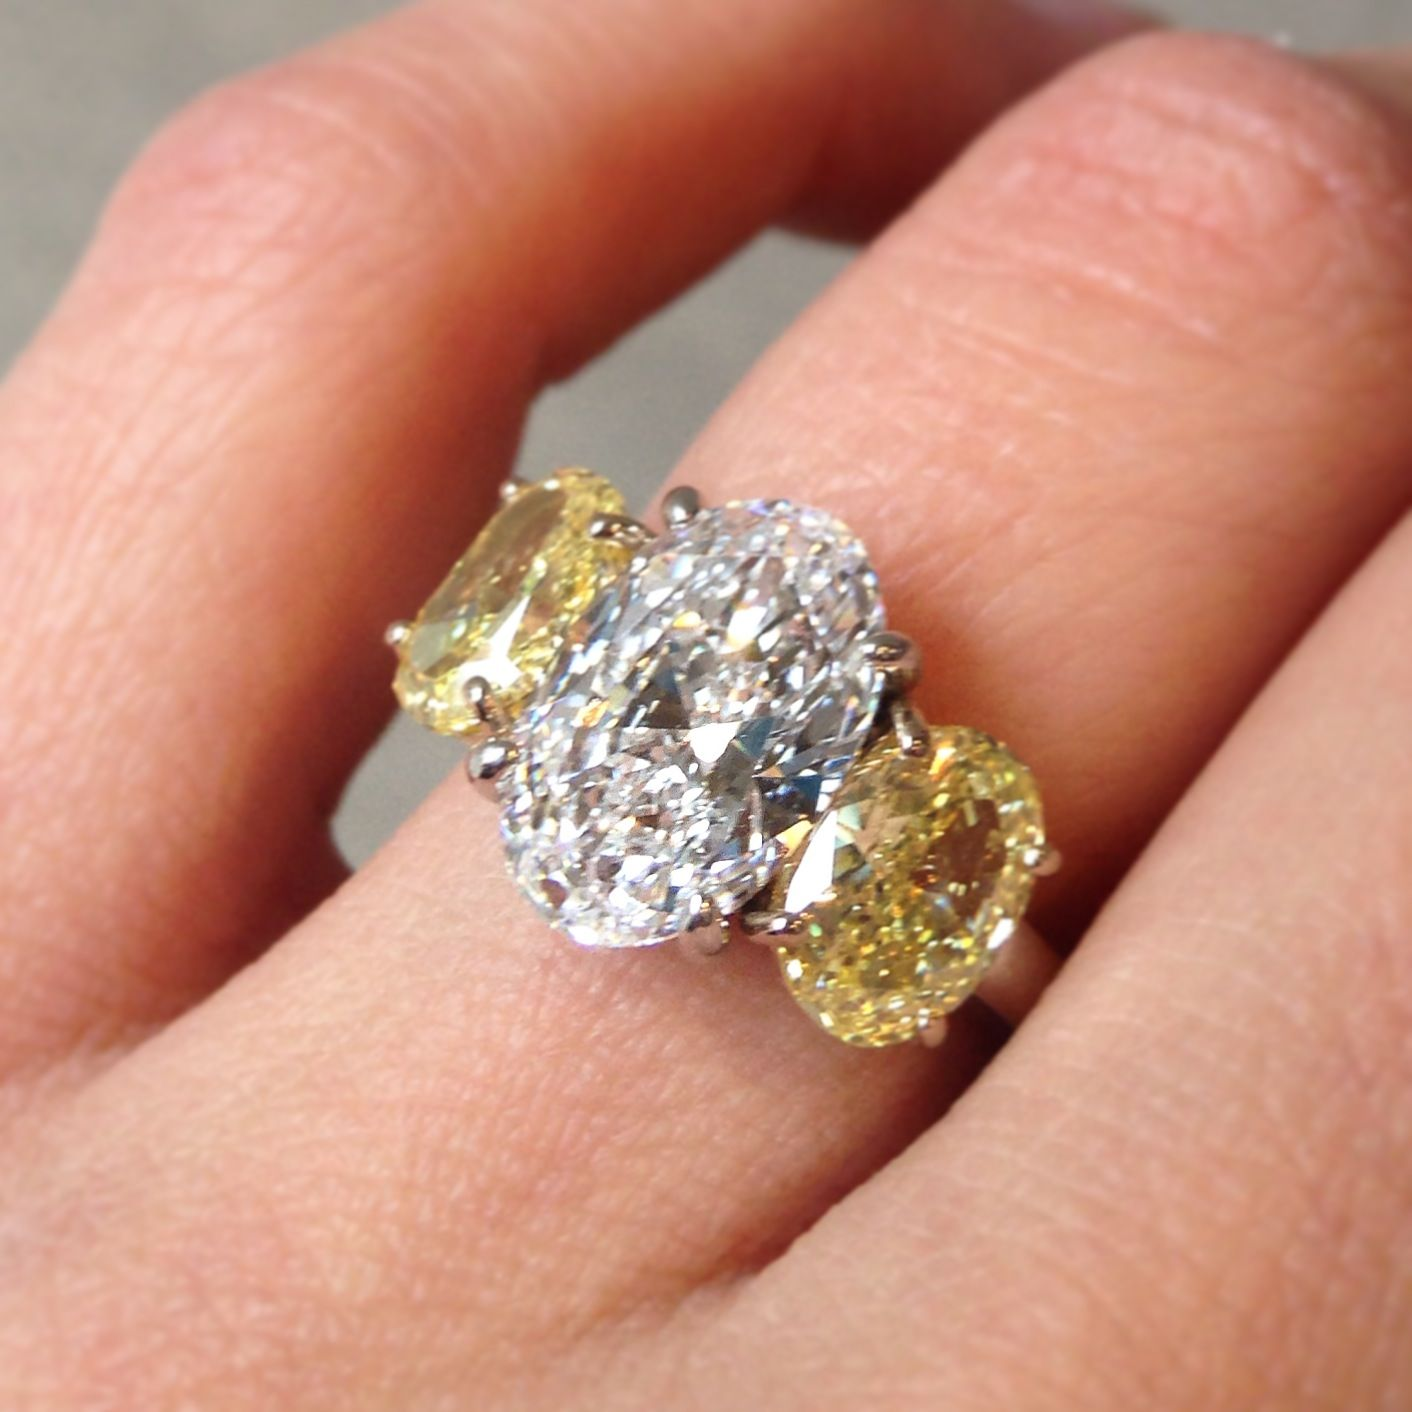 bespoke three stone oval engagement ring with a colorless oval